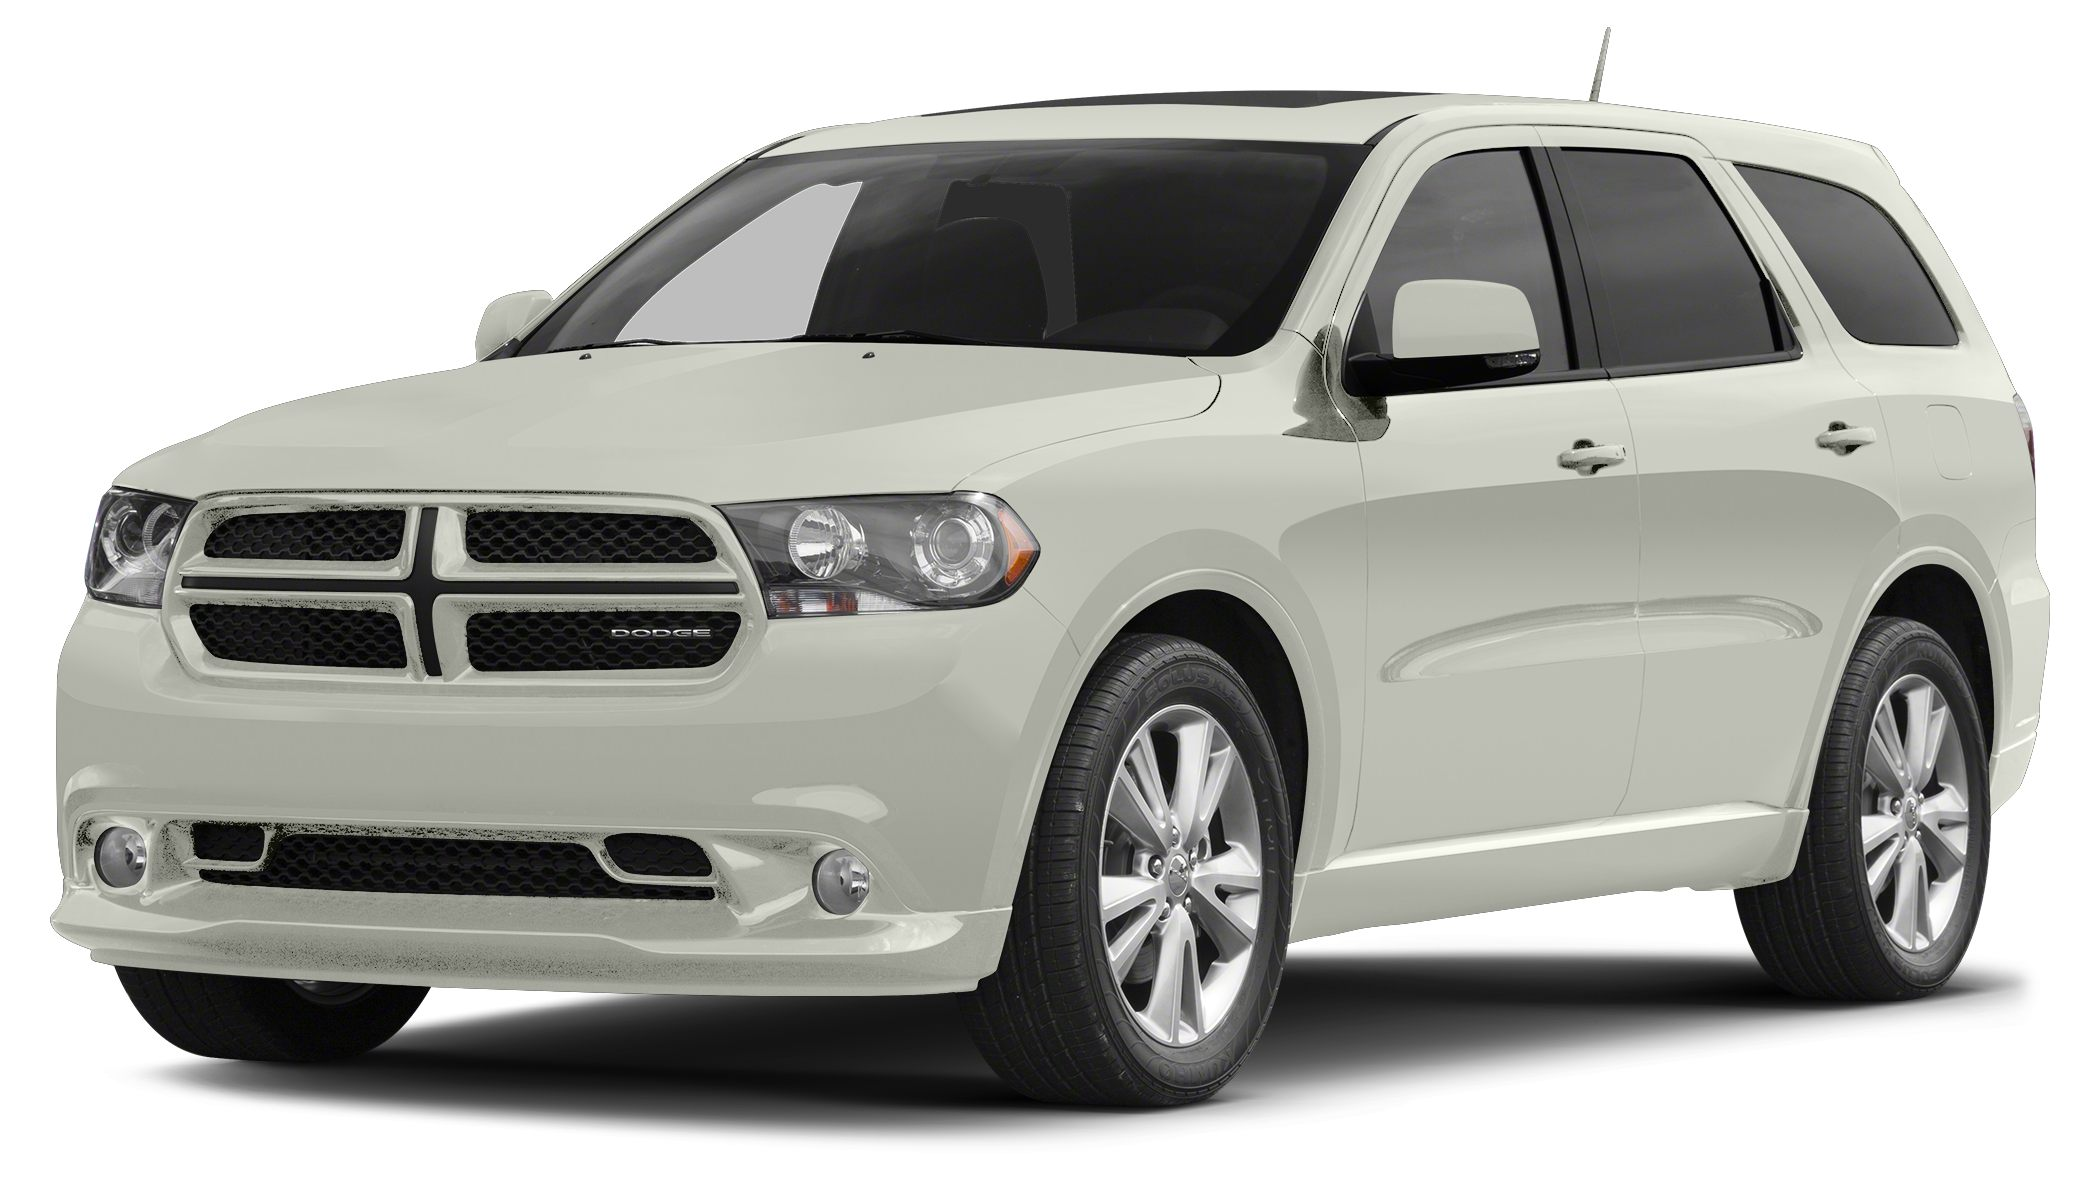 2013 Dodge Durango RT New Arrival AWD Low miles for a 2013 Auto Climate Control Leather Steer